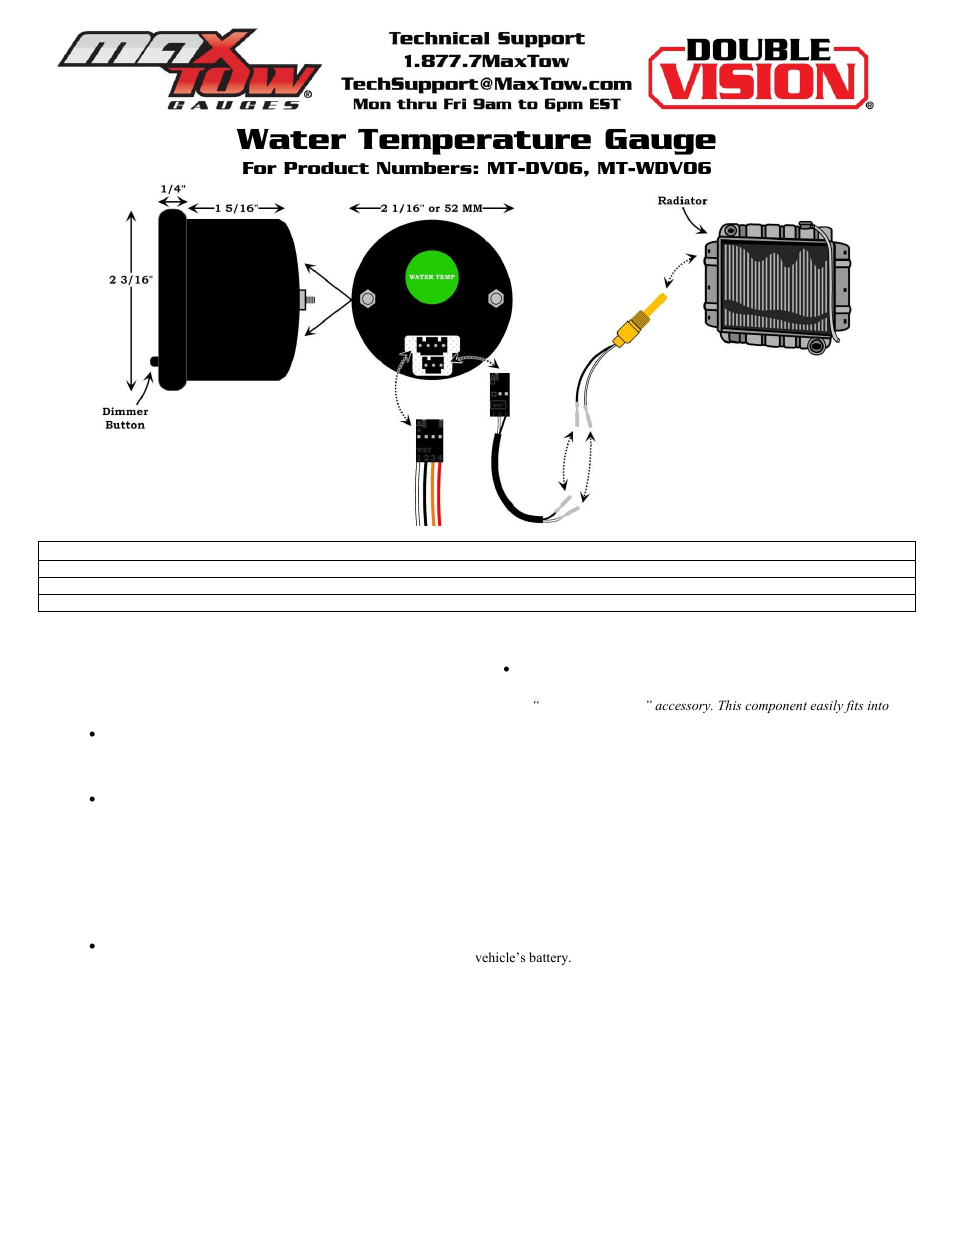 Glowshift Maxtow Series Water Temperature Gauge User Manual